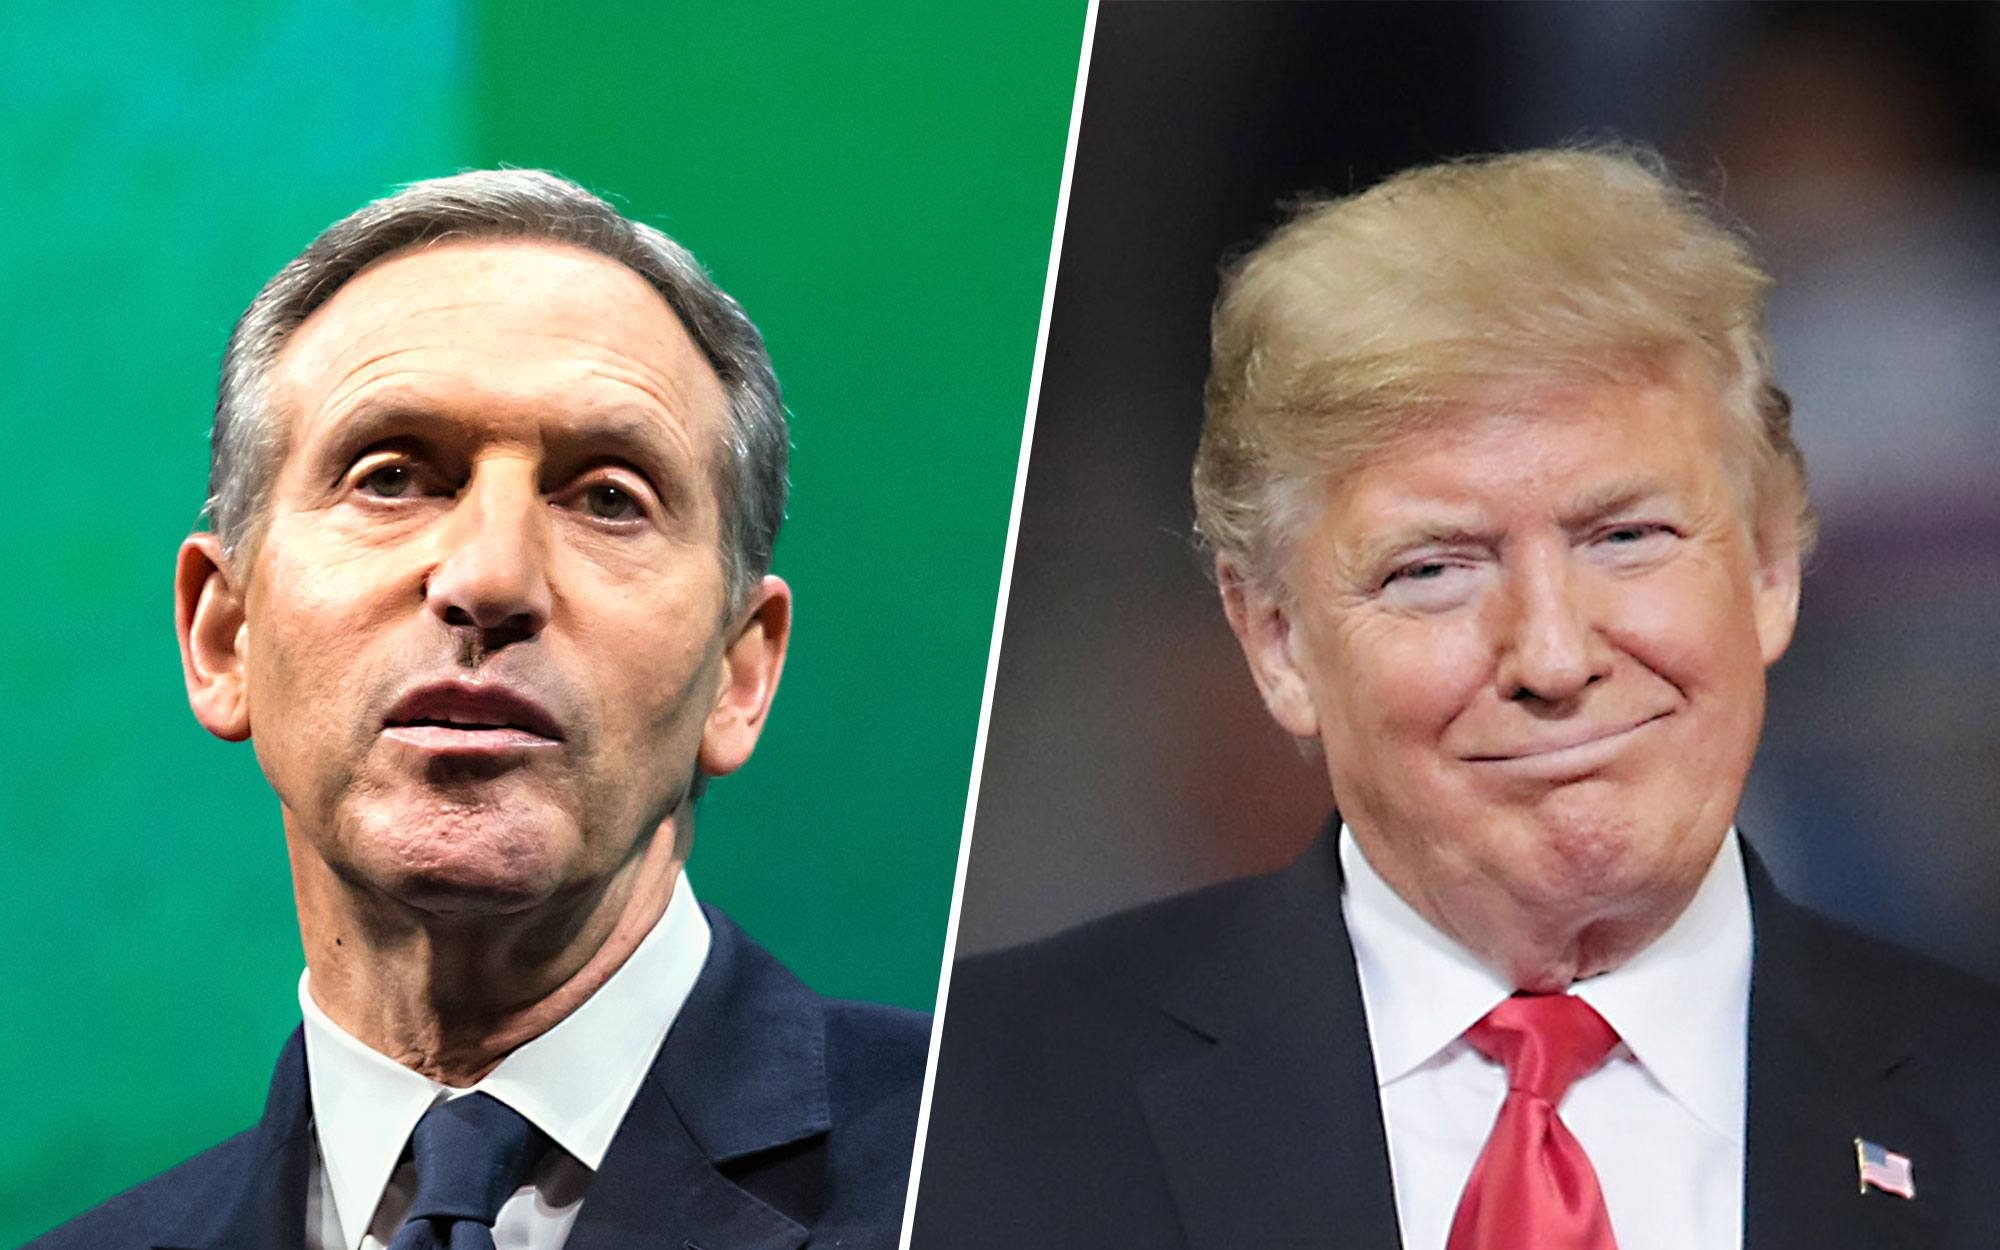 Howard Schultz Insists He'd Work with Both Parties, Says People Want Leadership They Can Trust